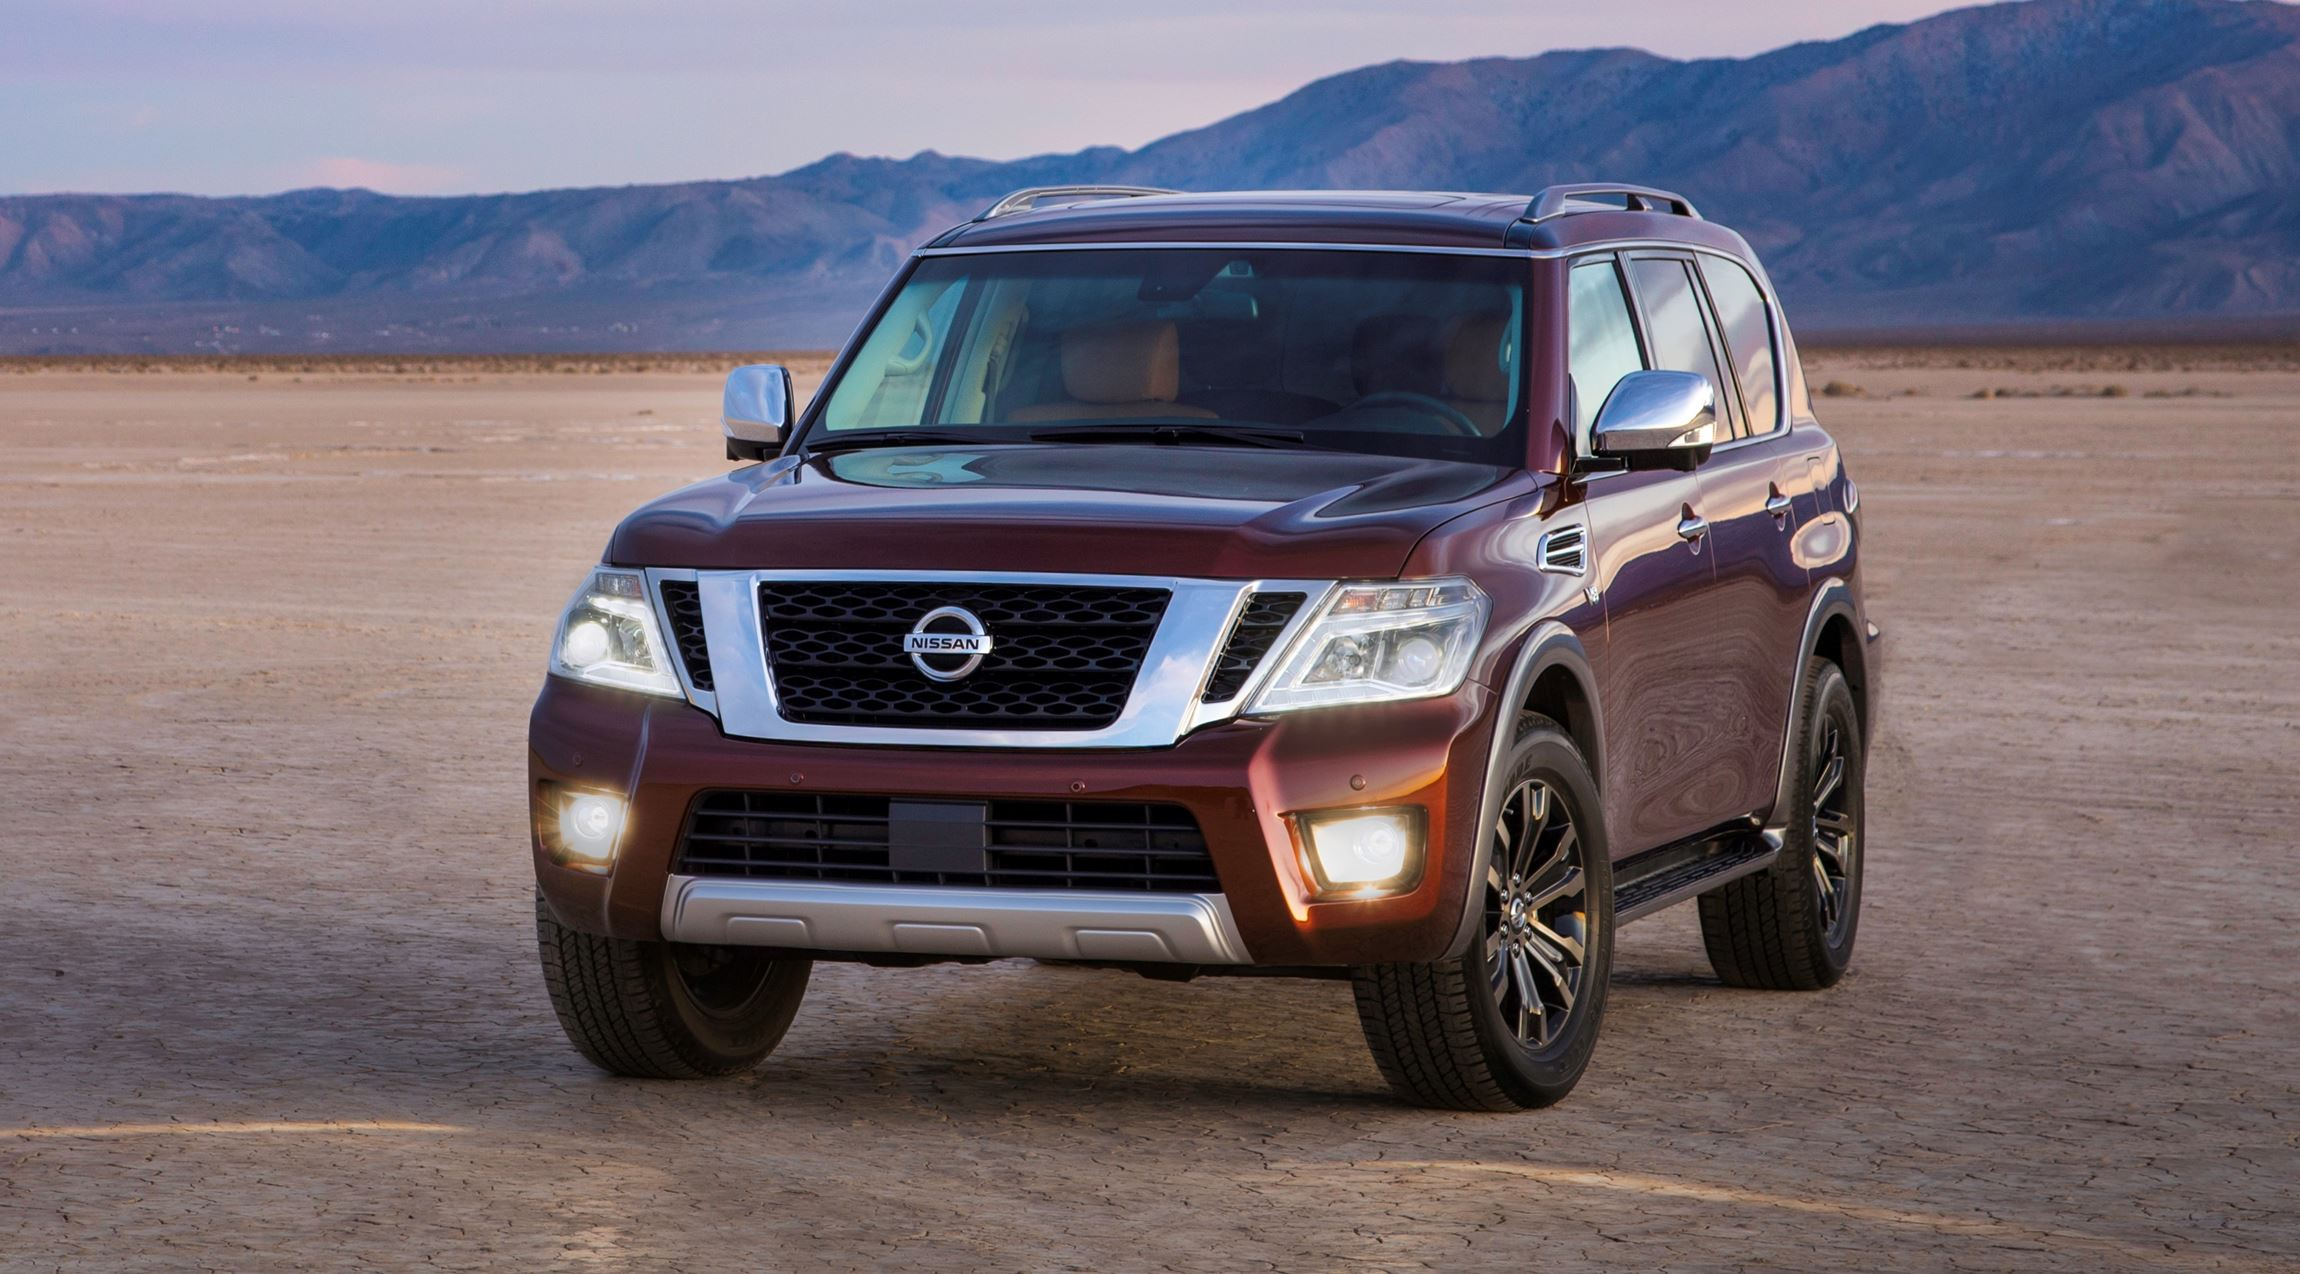 2017 nissan armada swaps from truck basis to bomb proof. Black Bedroom Furniture Sets. Home Design Ideas